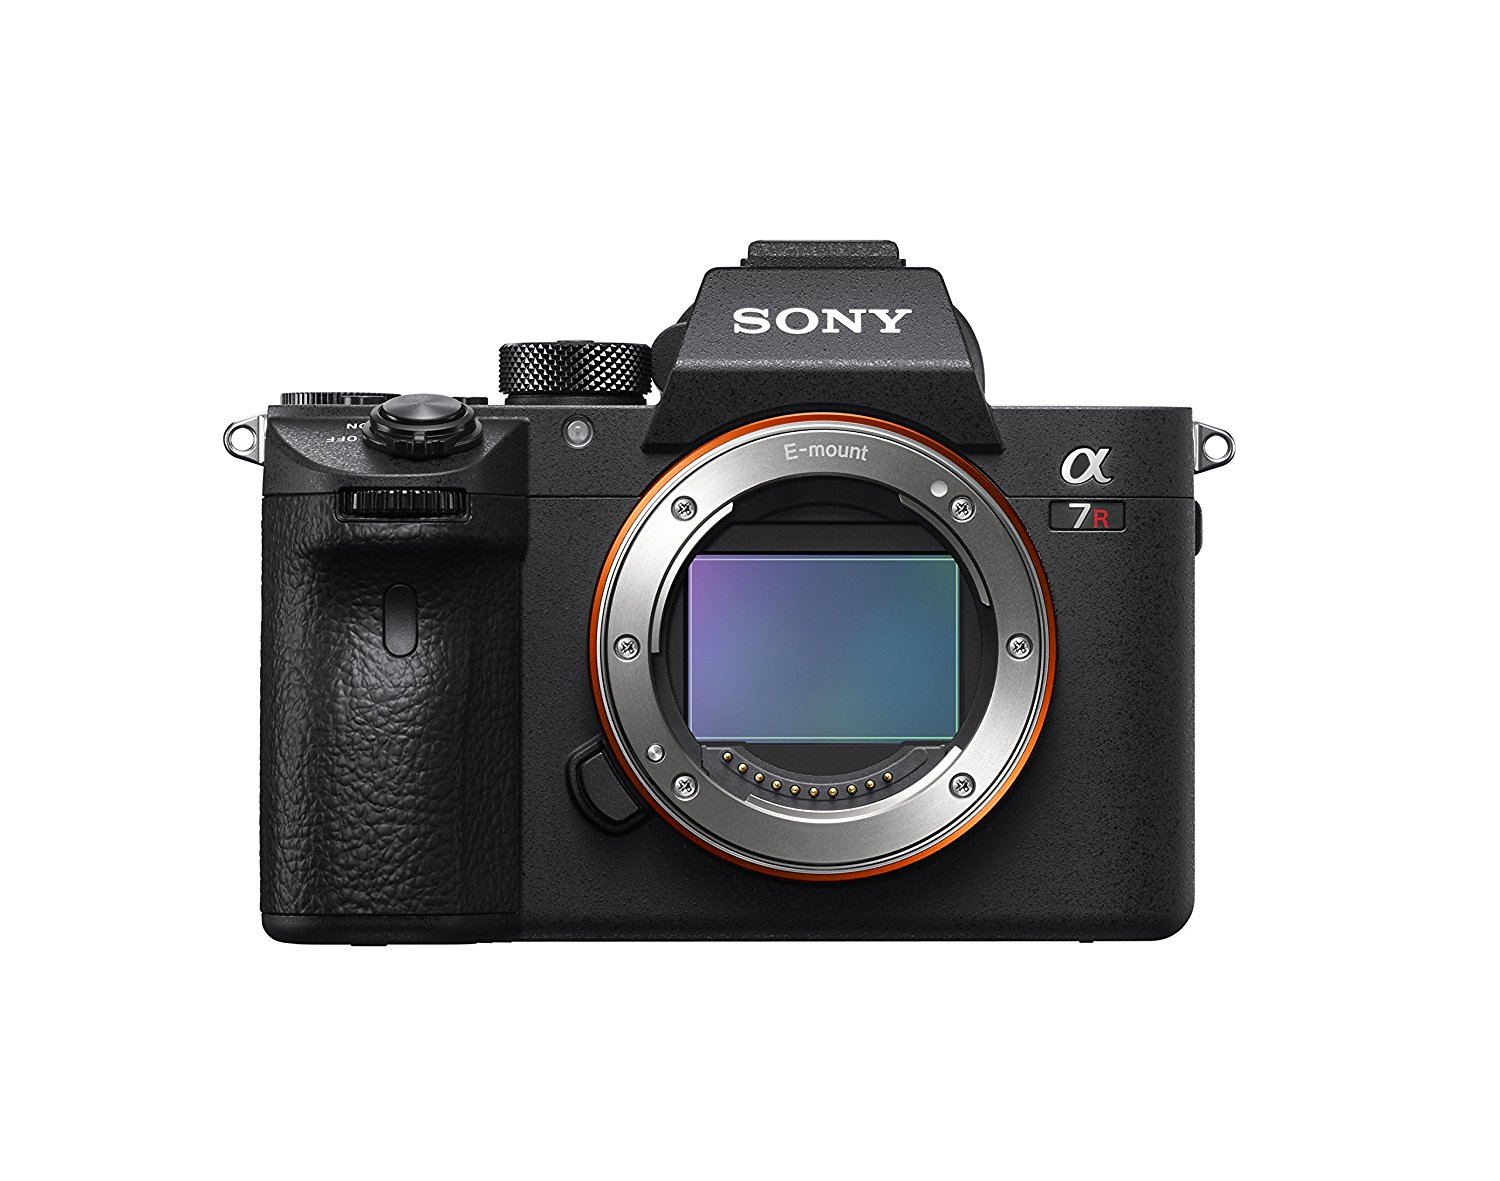 Sony A7RIII - This was my primary camera throughout the trip. It was great during this shoot, especially for the low light quality when shooting the stars.